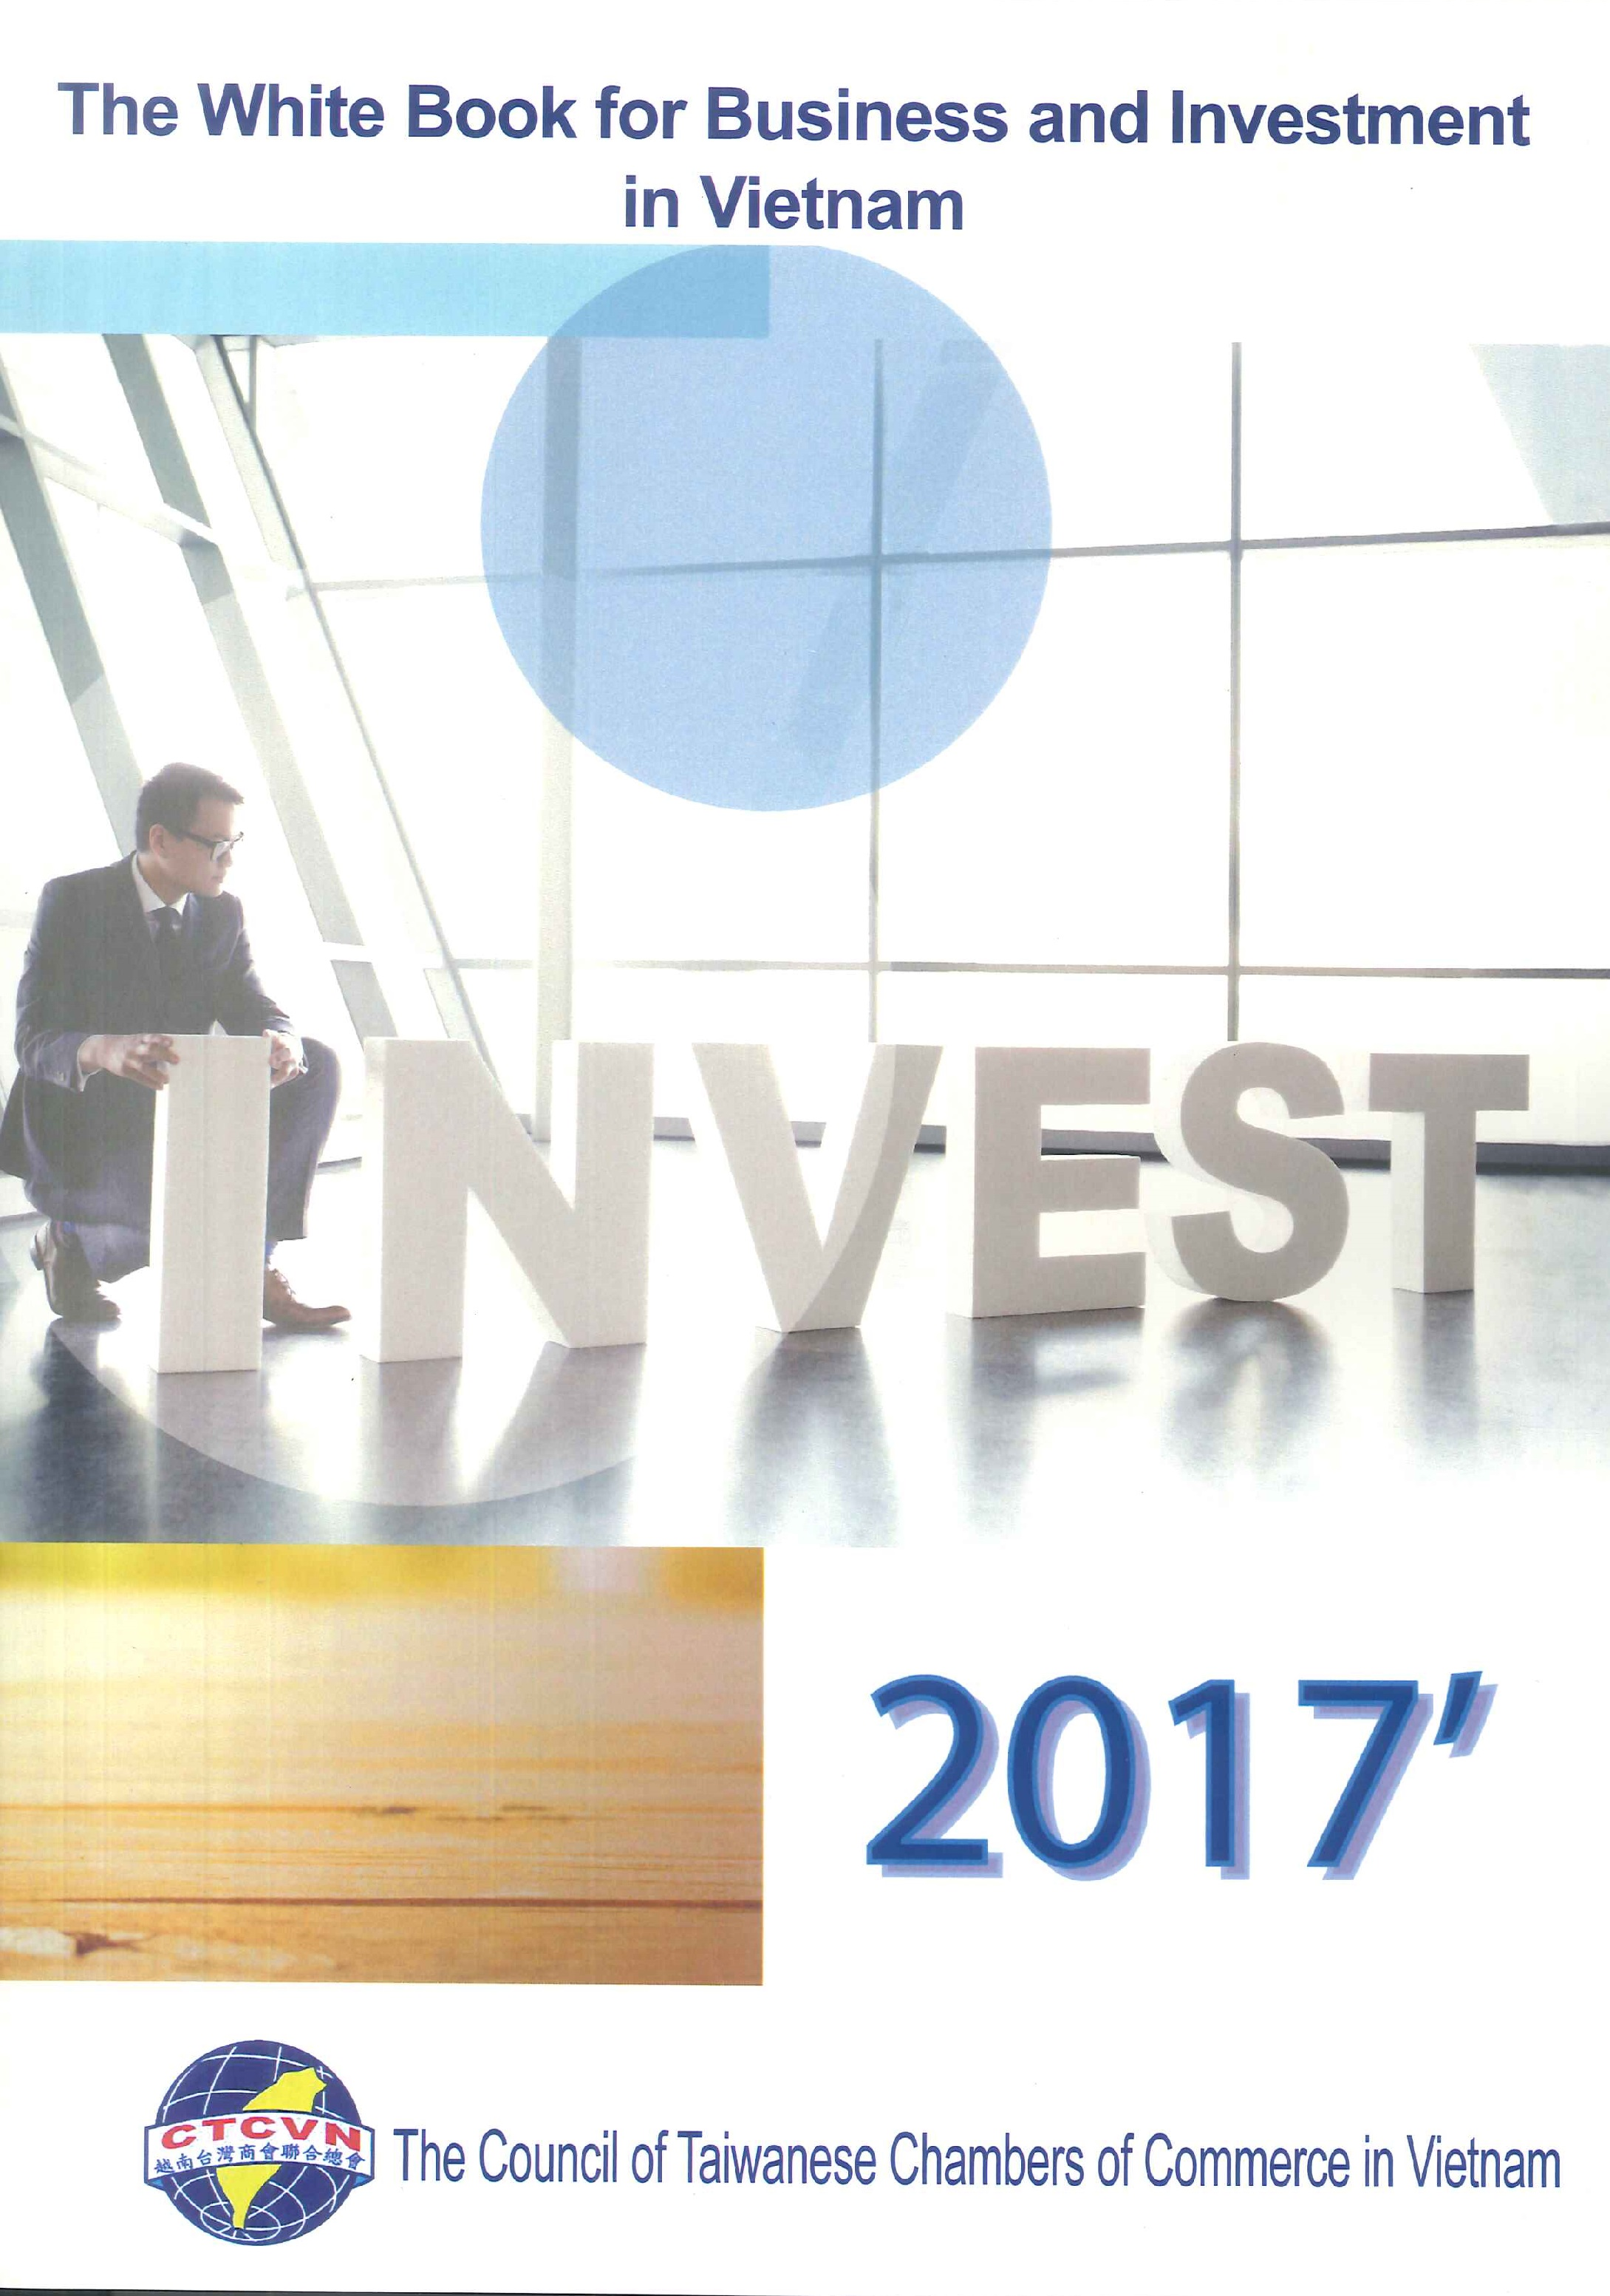 The white book for business and investment in Vietnam.2017